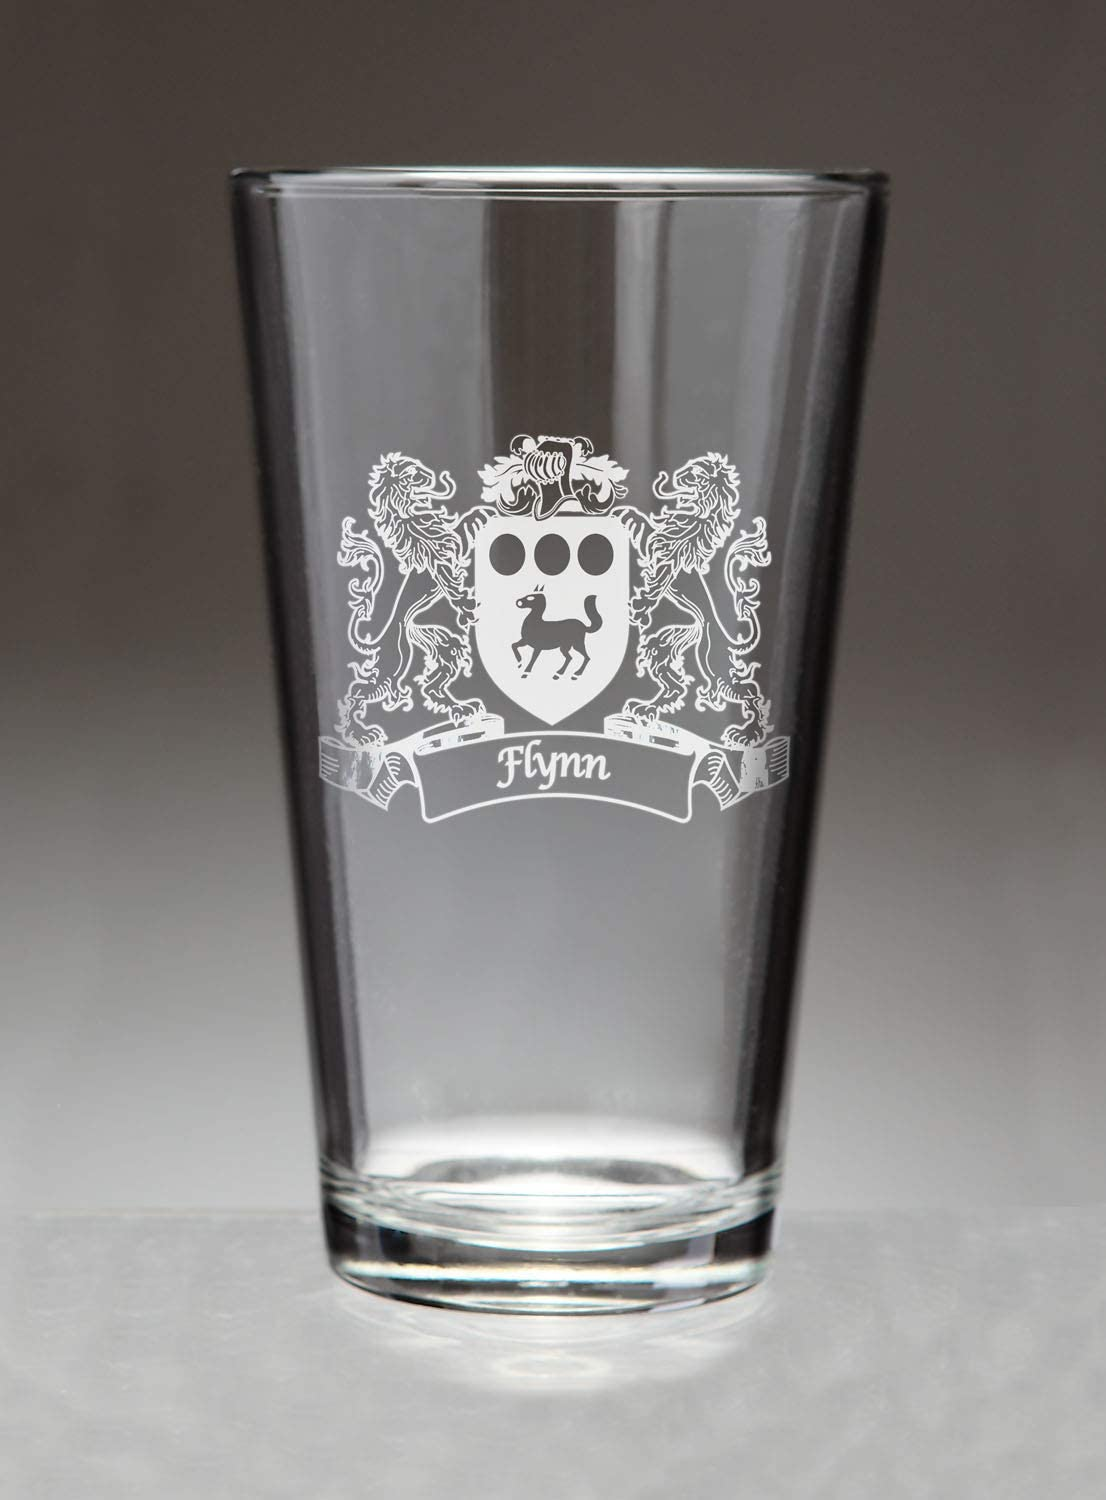 Bombing free shipping Flynn Irish Coat of Arms Etched Pint Glasses Sand Max 63% OFF